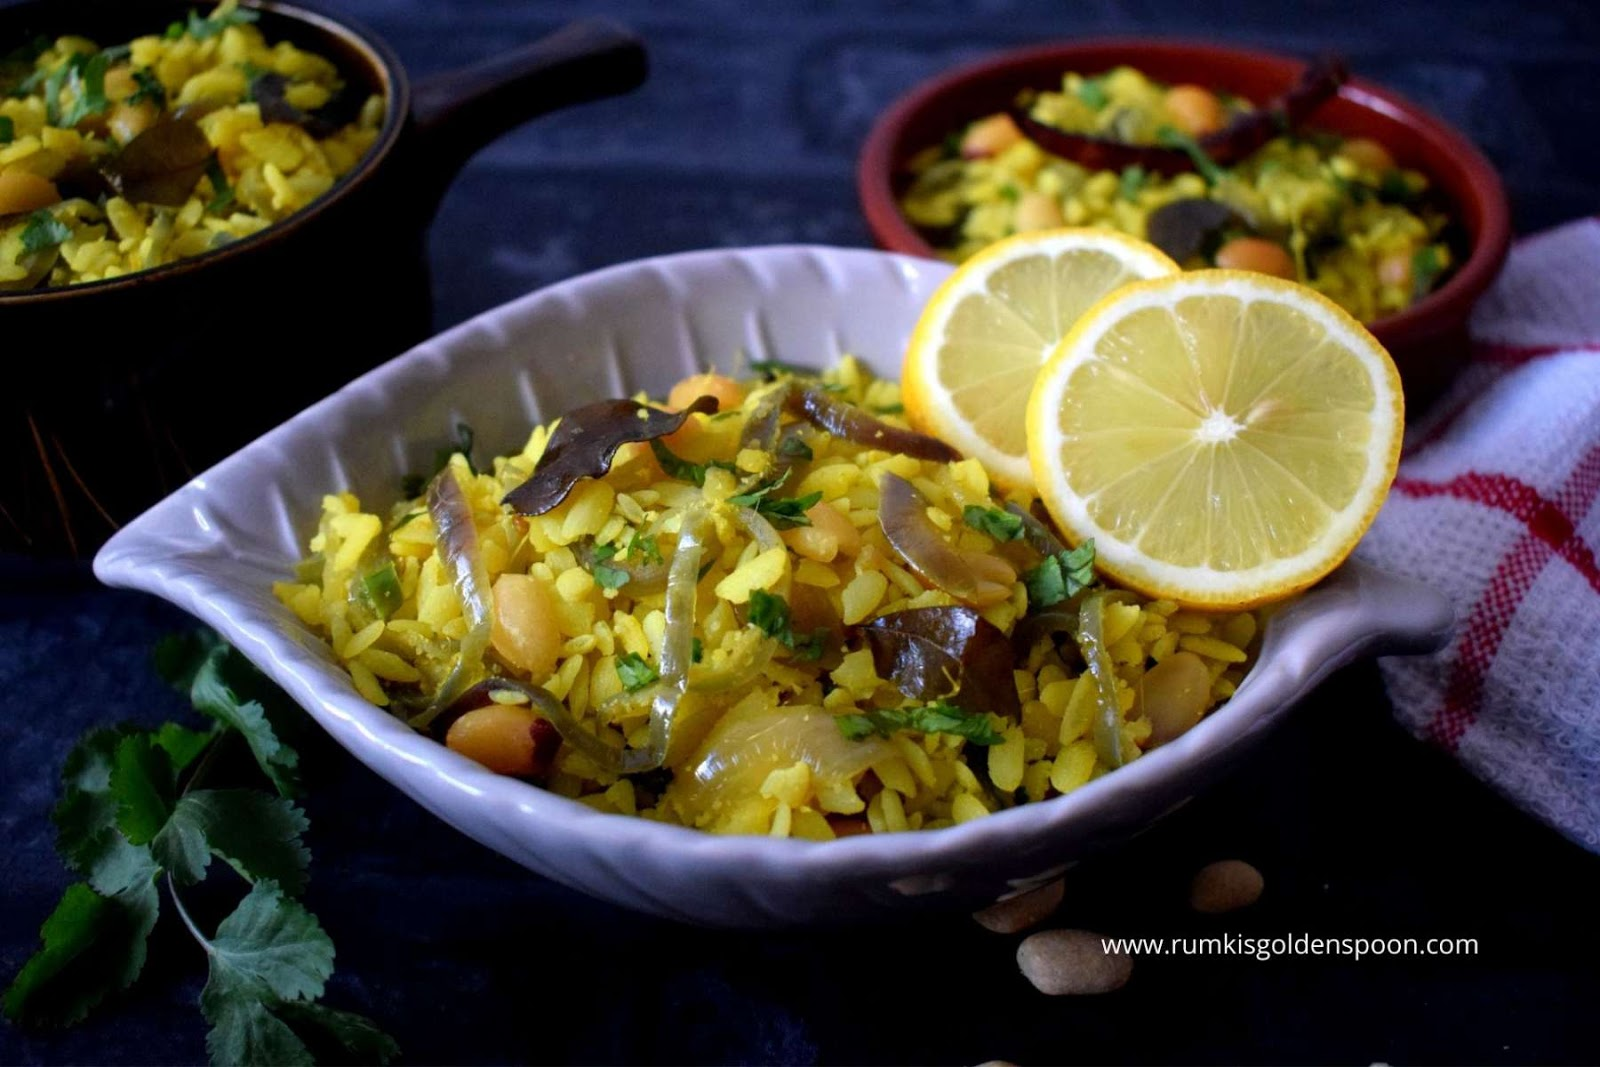 Indian Recipe, Vegetarian, Vegan, Breakfast, Snacks, Kanda Poha - Maharashtrian Breakfast, Quick and easy, Rumki's Golden Spoon, Rice flakes, Beaten Rice, Flattened rice, Rumki's Golden Spoon